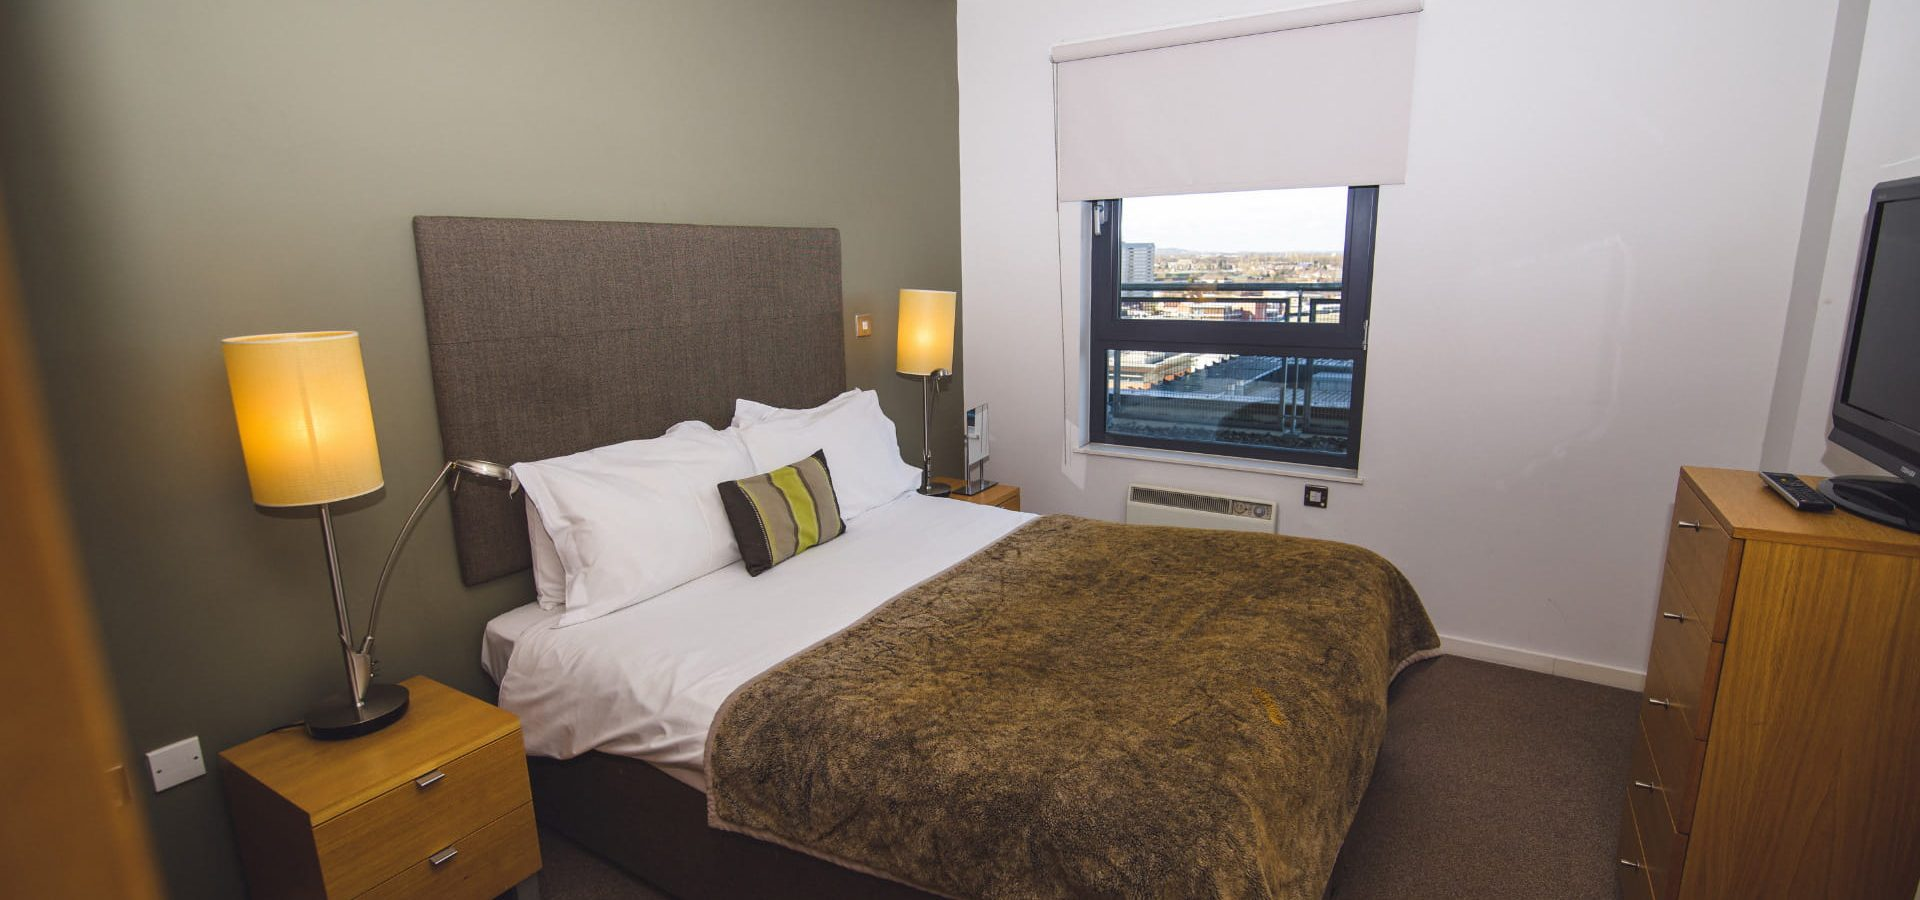 SACO Serviced Apartments in Birmingham | Brindleyplace ...